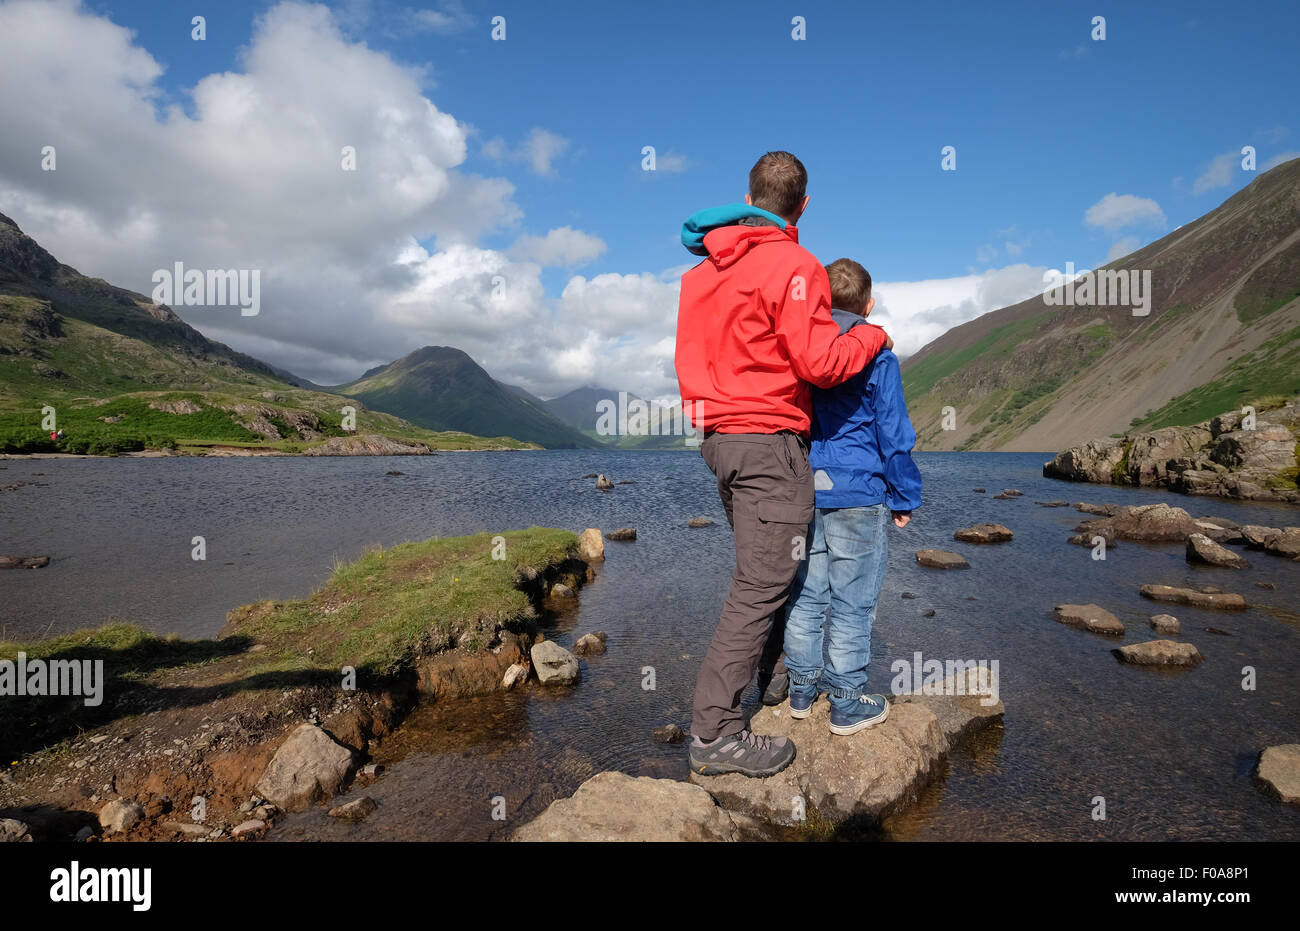 A father and son enjoy the view at Wastwater in the Lake District Cumbria, UK - Stock Image